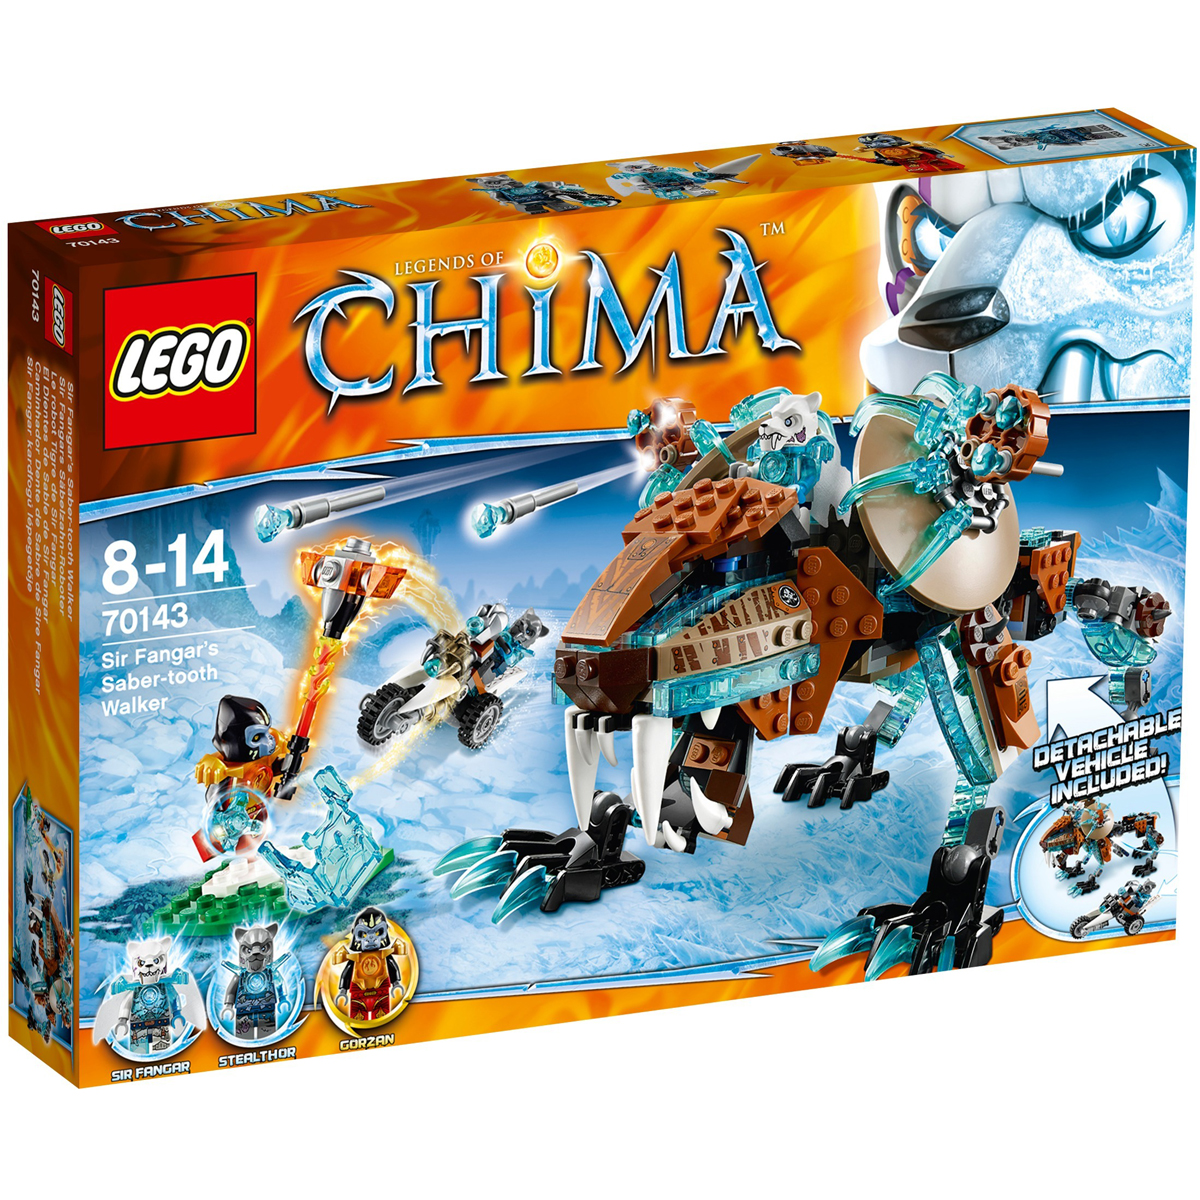 Do choi LEGO 70143 - Co May Chien Dau cua Ho Bang